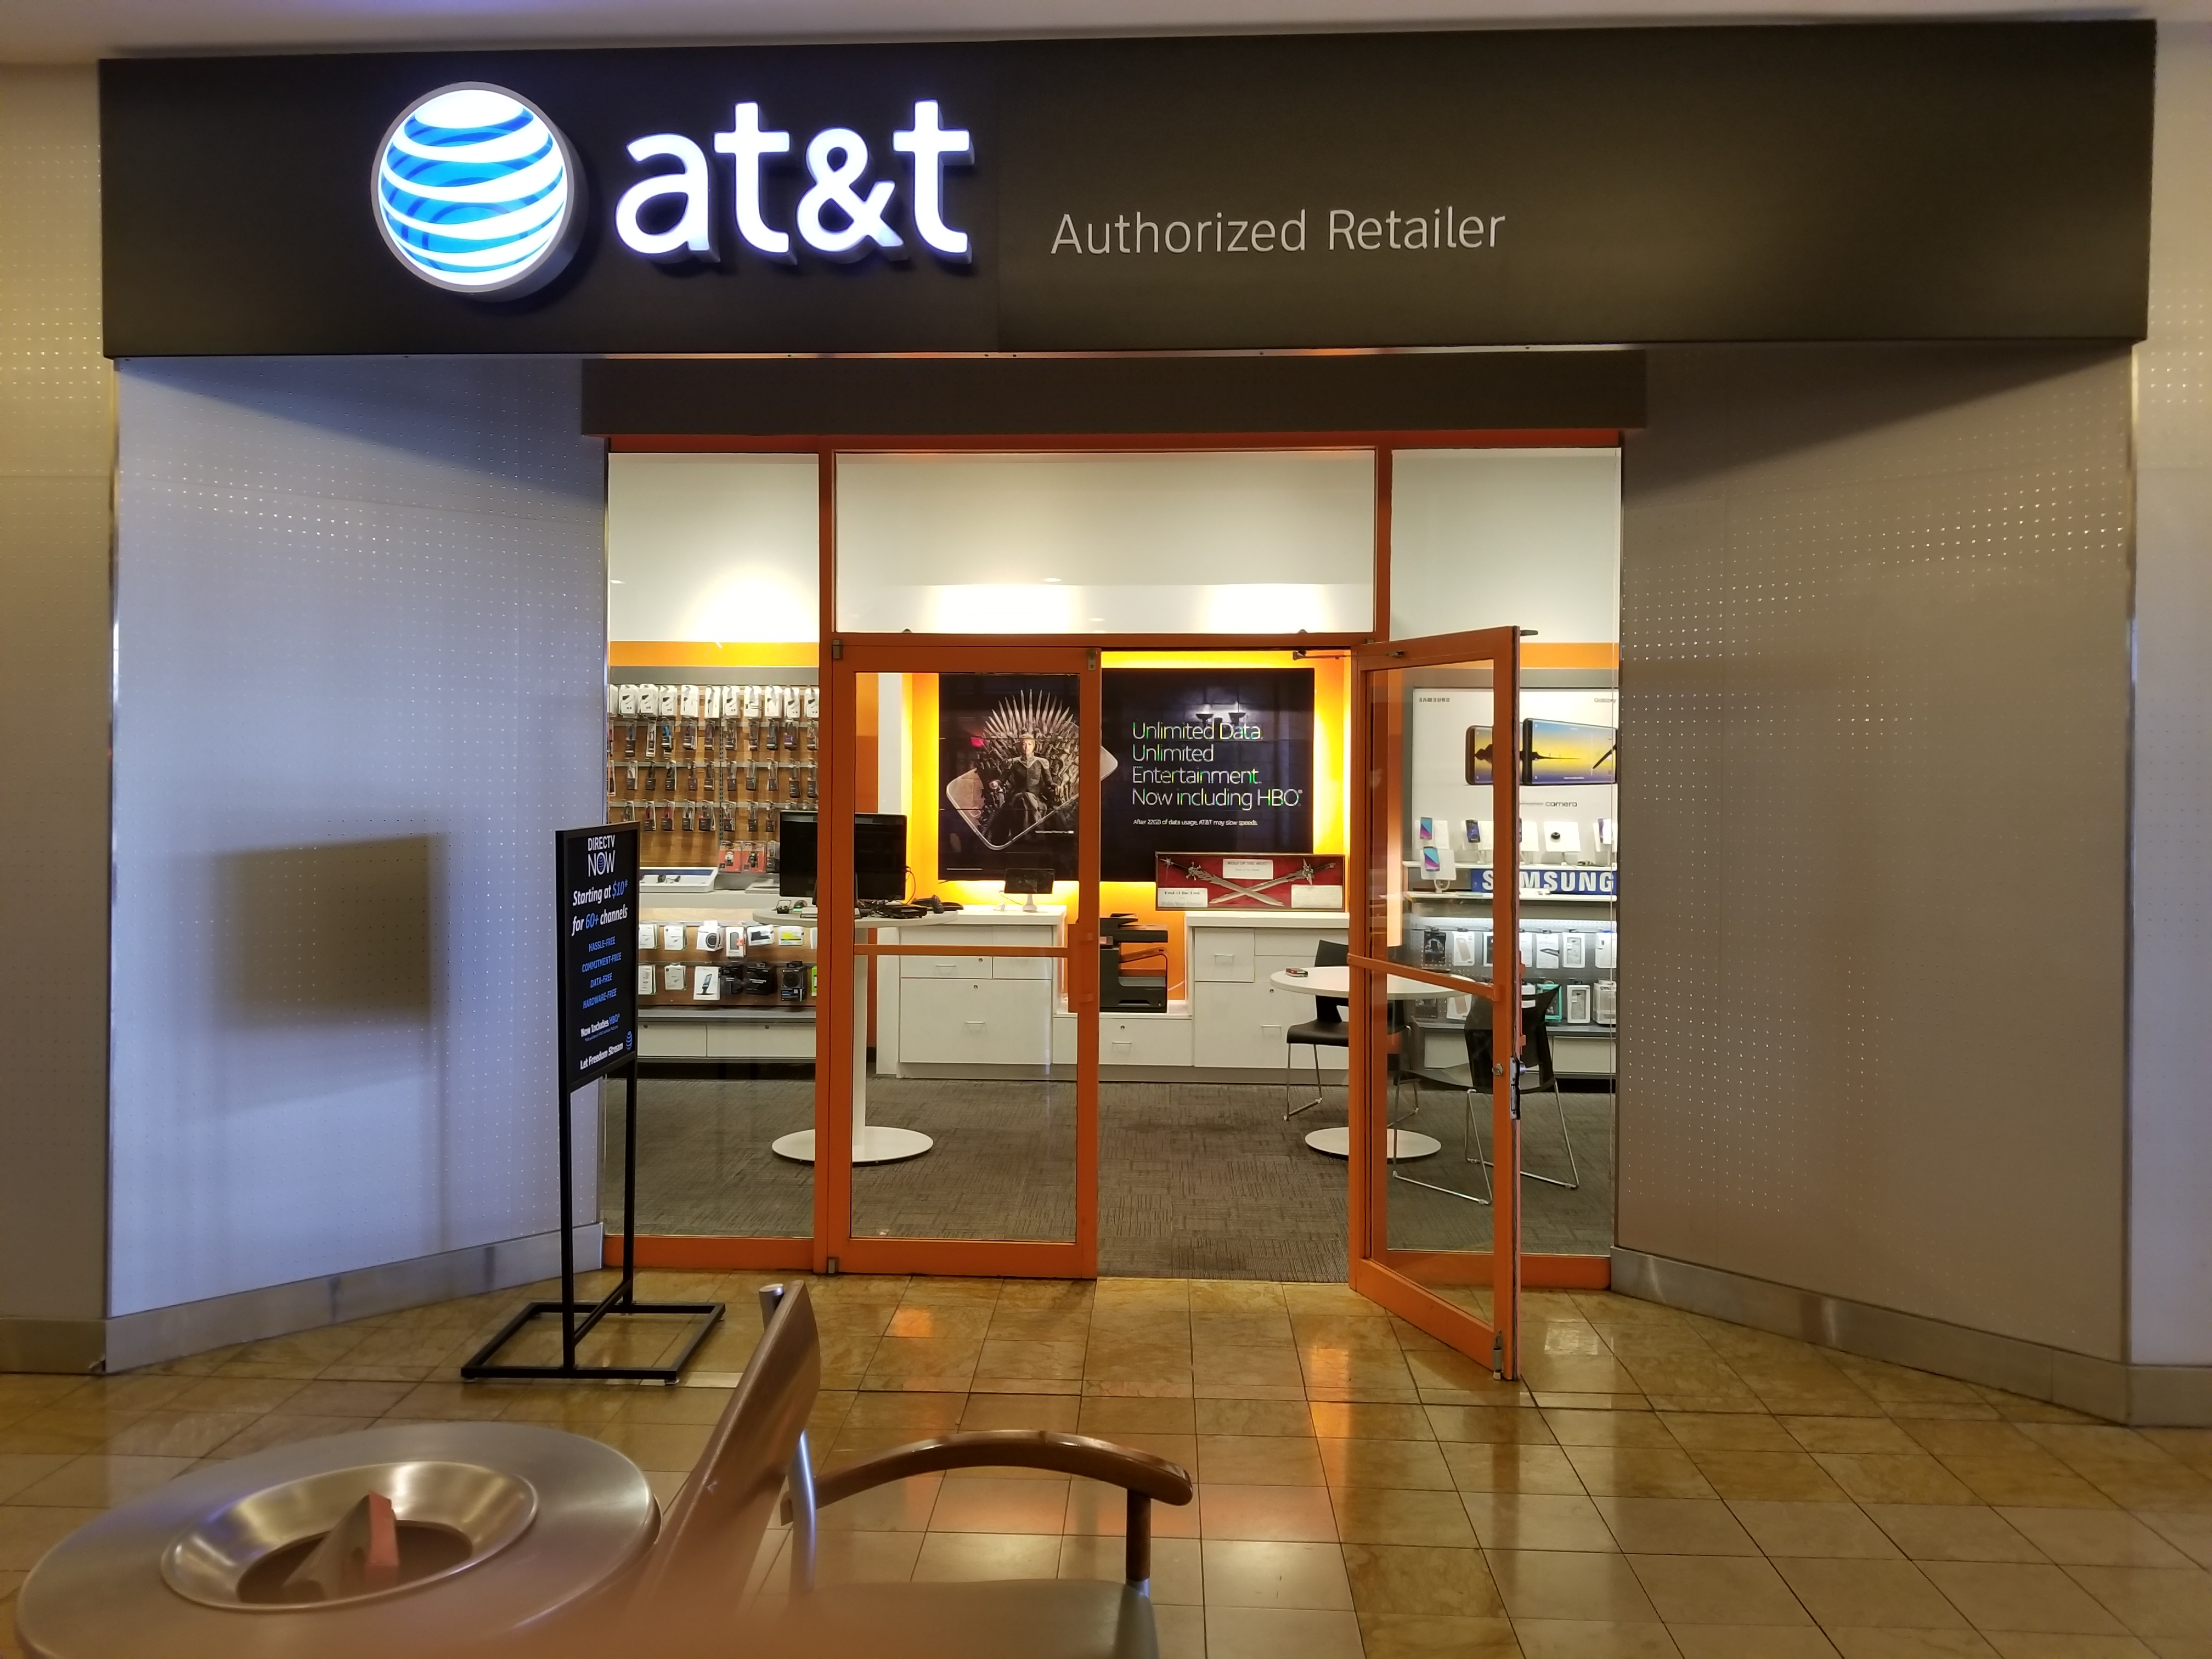 Always use an AT&T corporate store when buying a phone or making any type of AT&T purchase. Not all AT&T stores are the same and if you happen to notice you're in an AT&T .